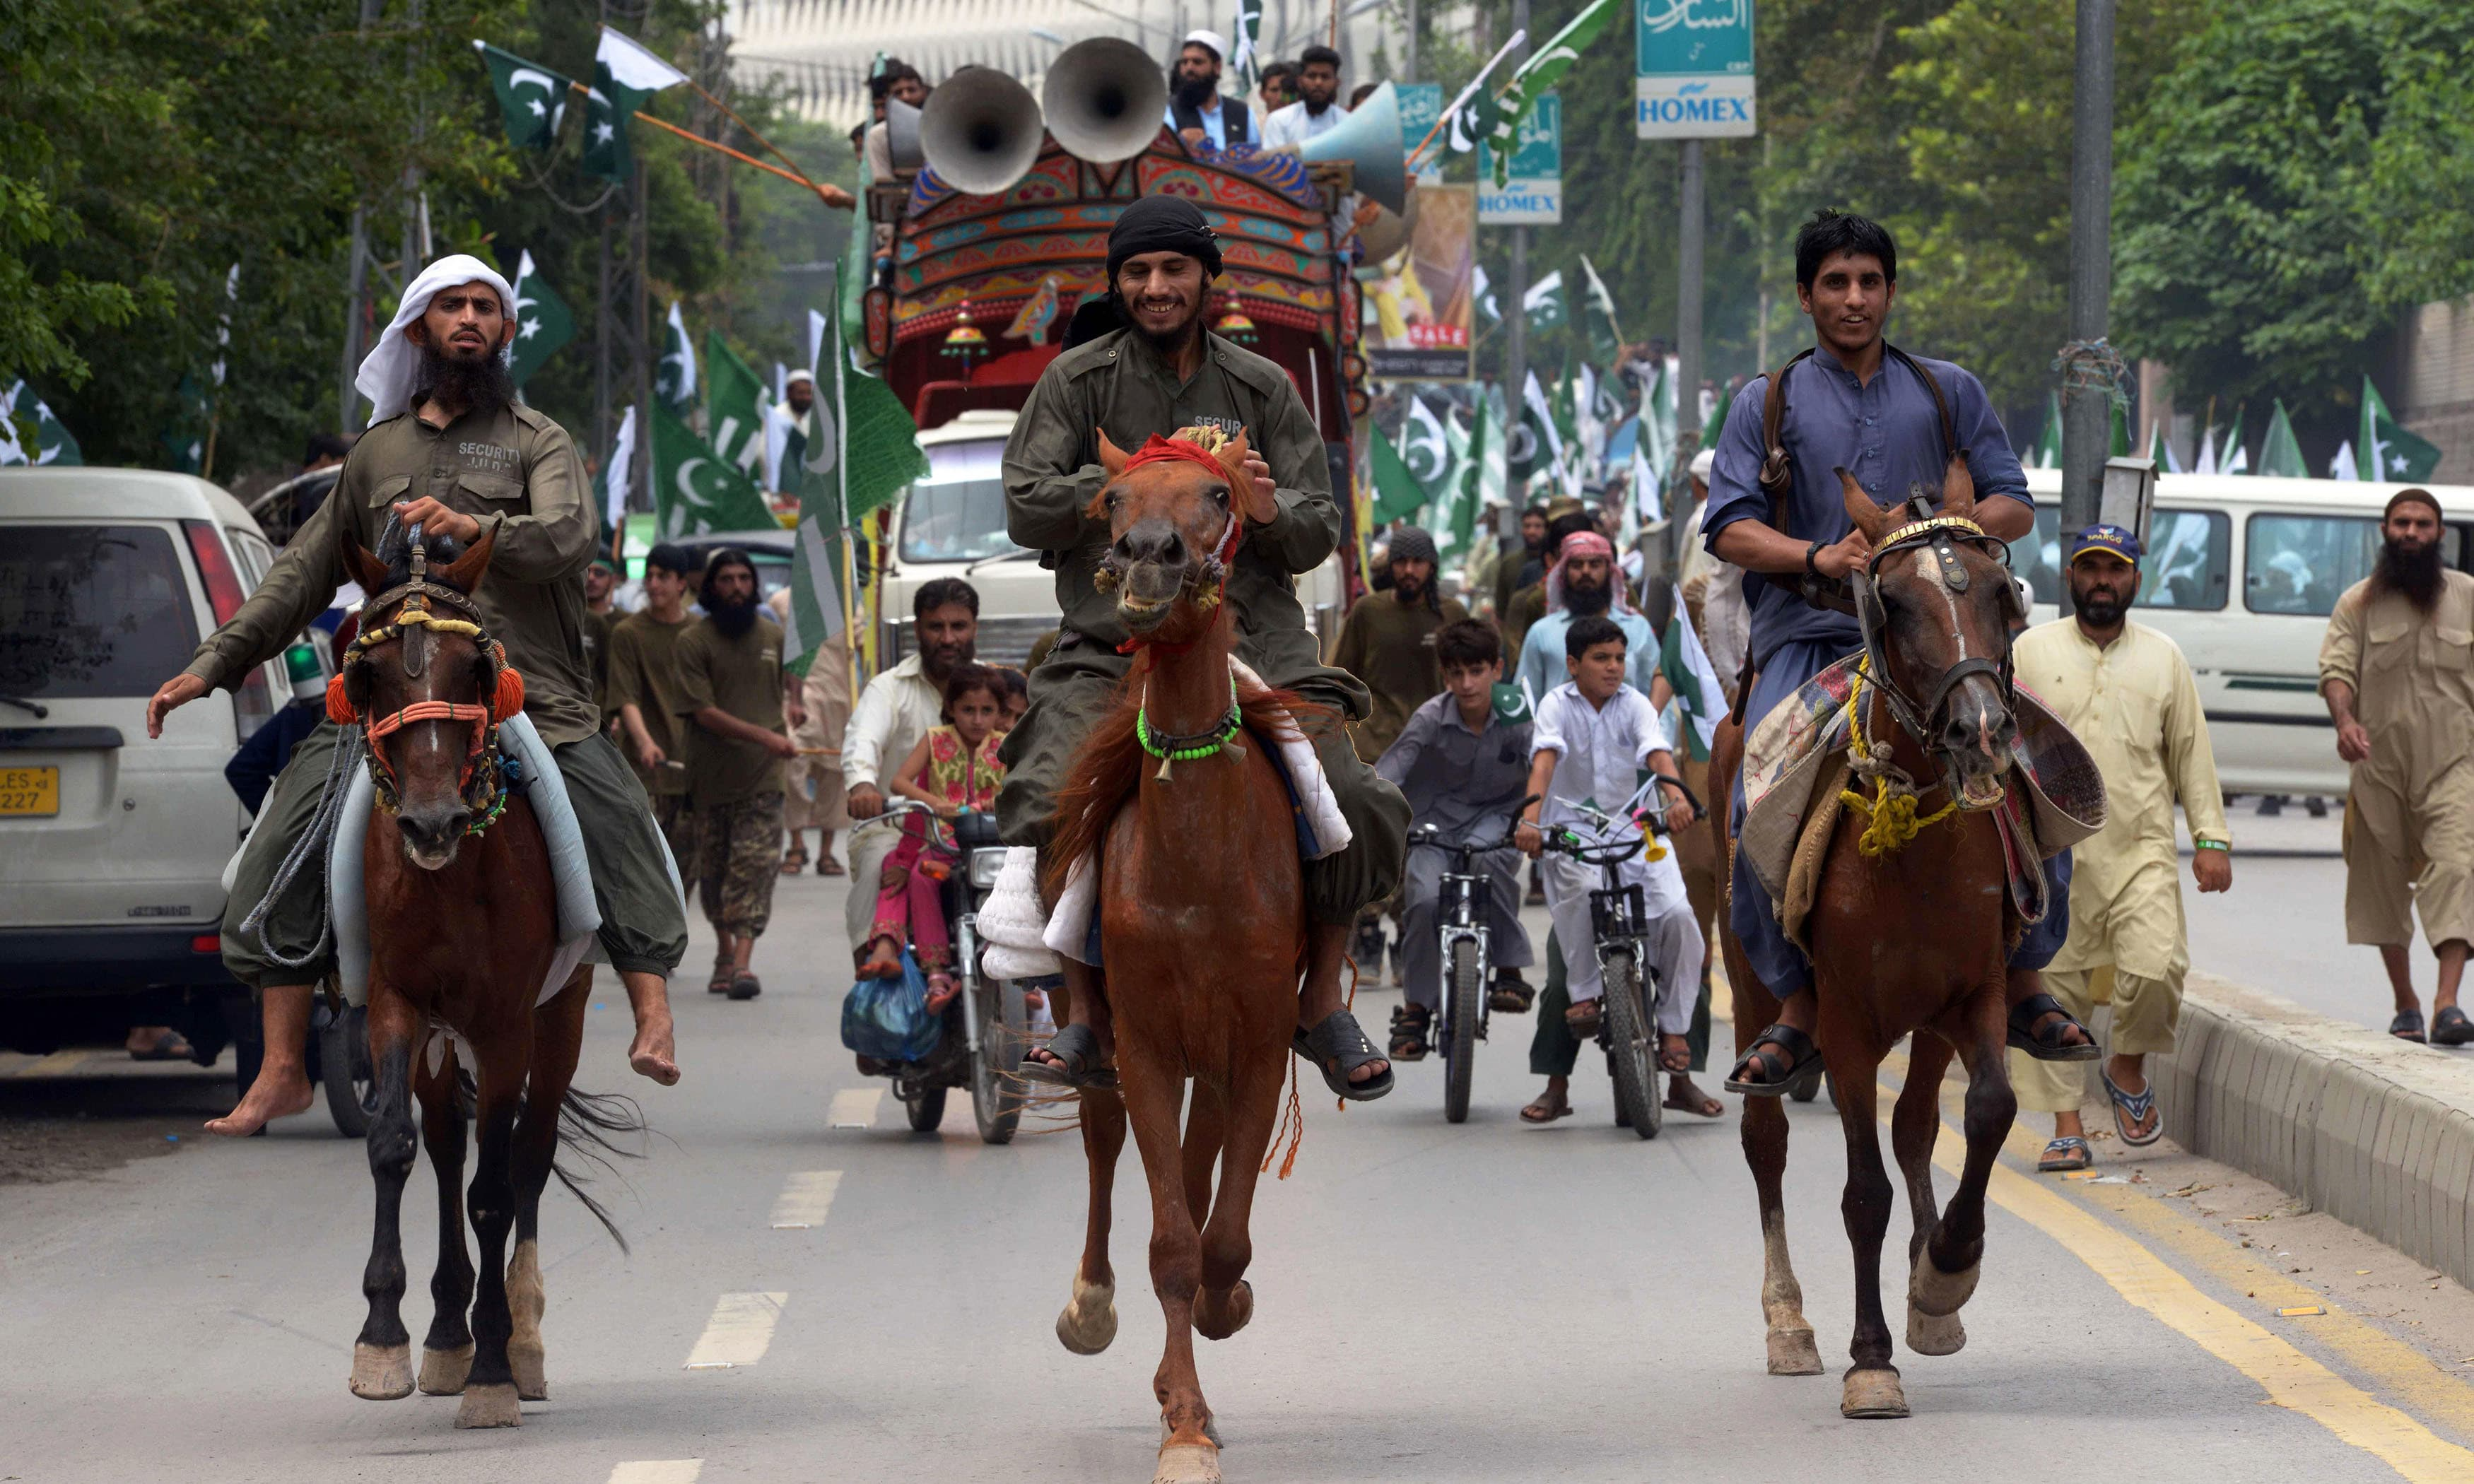 Residents march on horses during a rally in Peshawar. —AFP